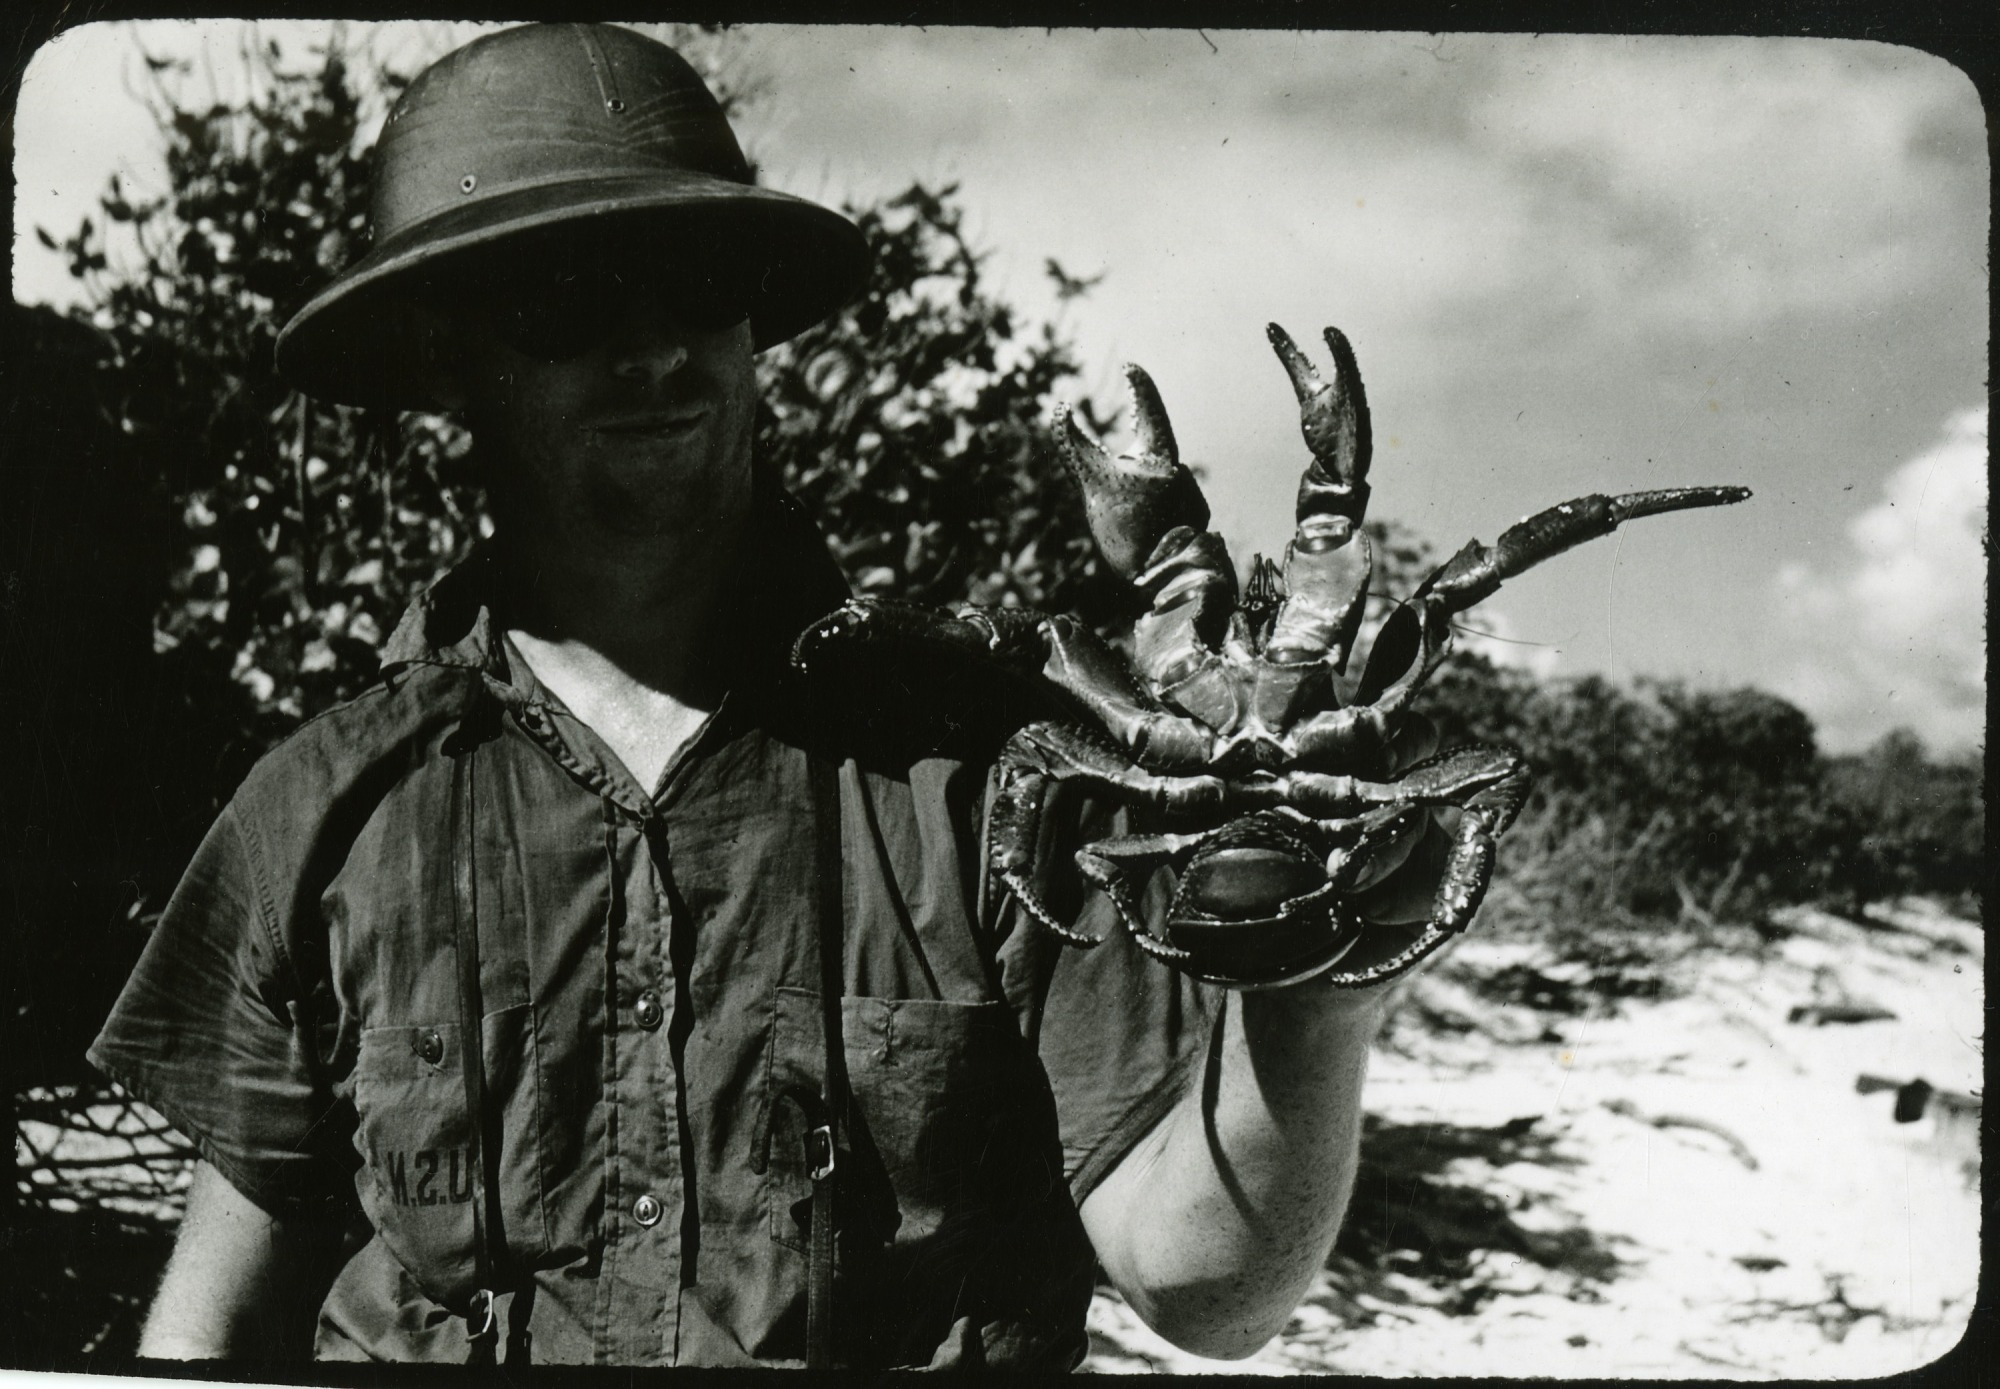 Preview of Dr. Robert Hiatt Holding a Coconut Crab